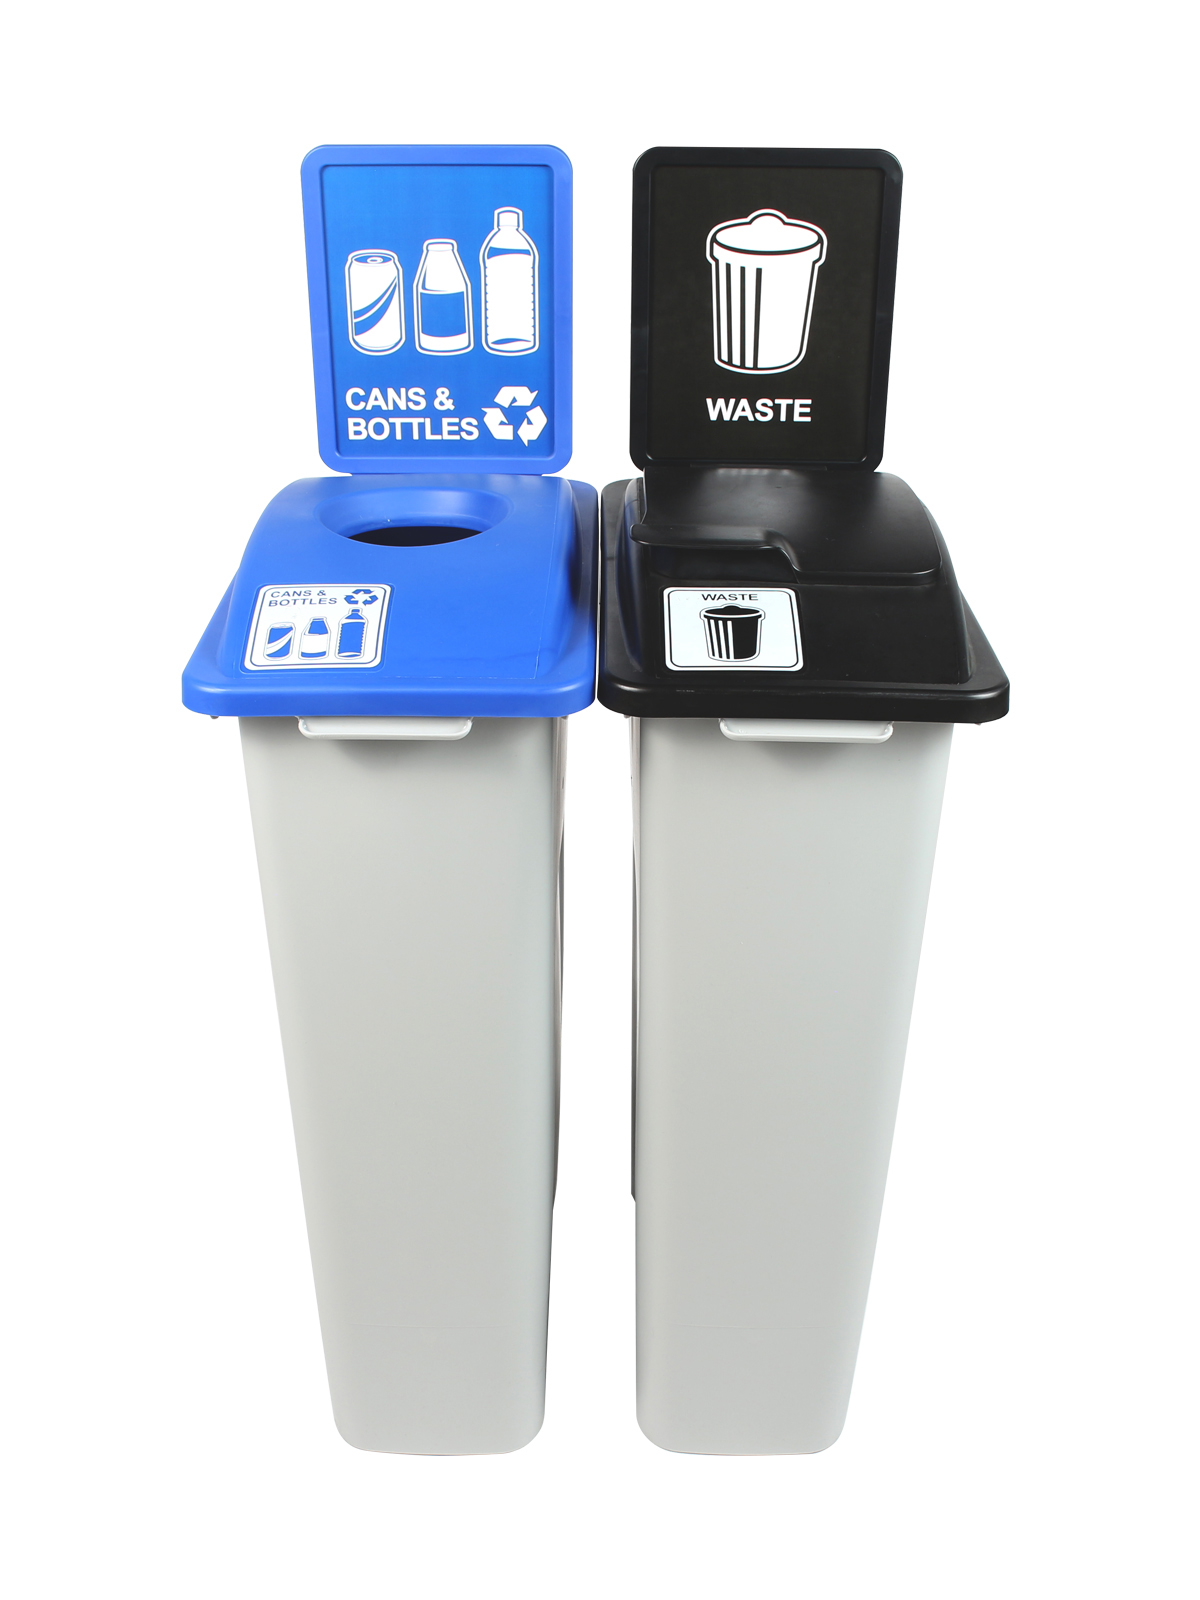 WASTE WATCHER - Double - Cans & Bottles-Waste - Circle-Solid Lift - Grey-Blue-Black